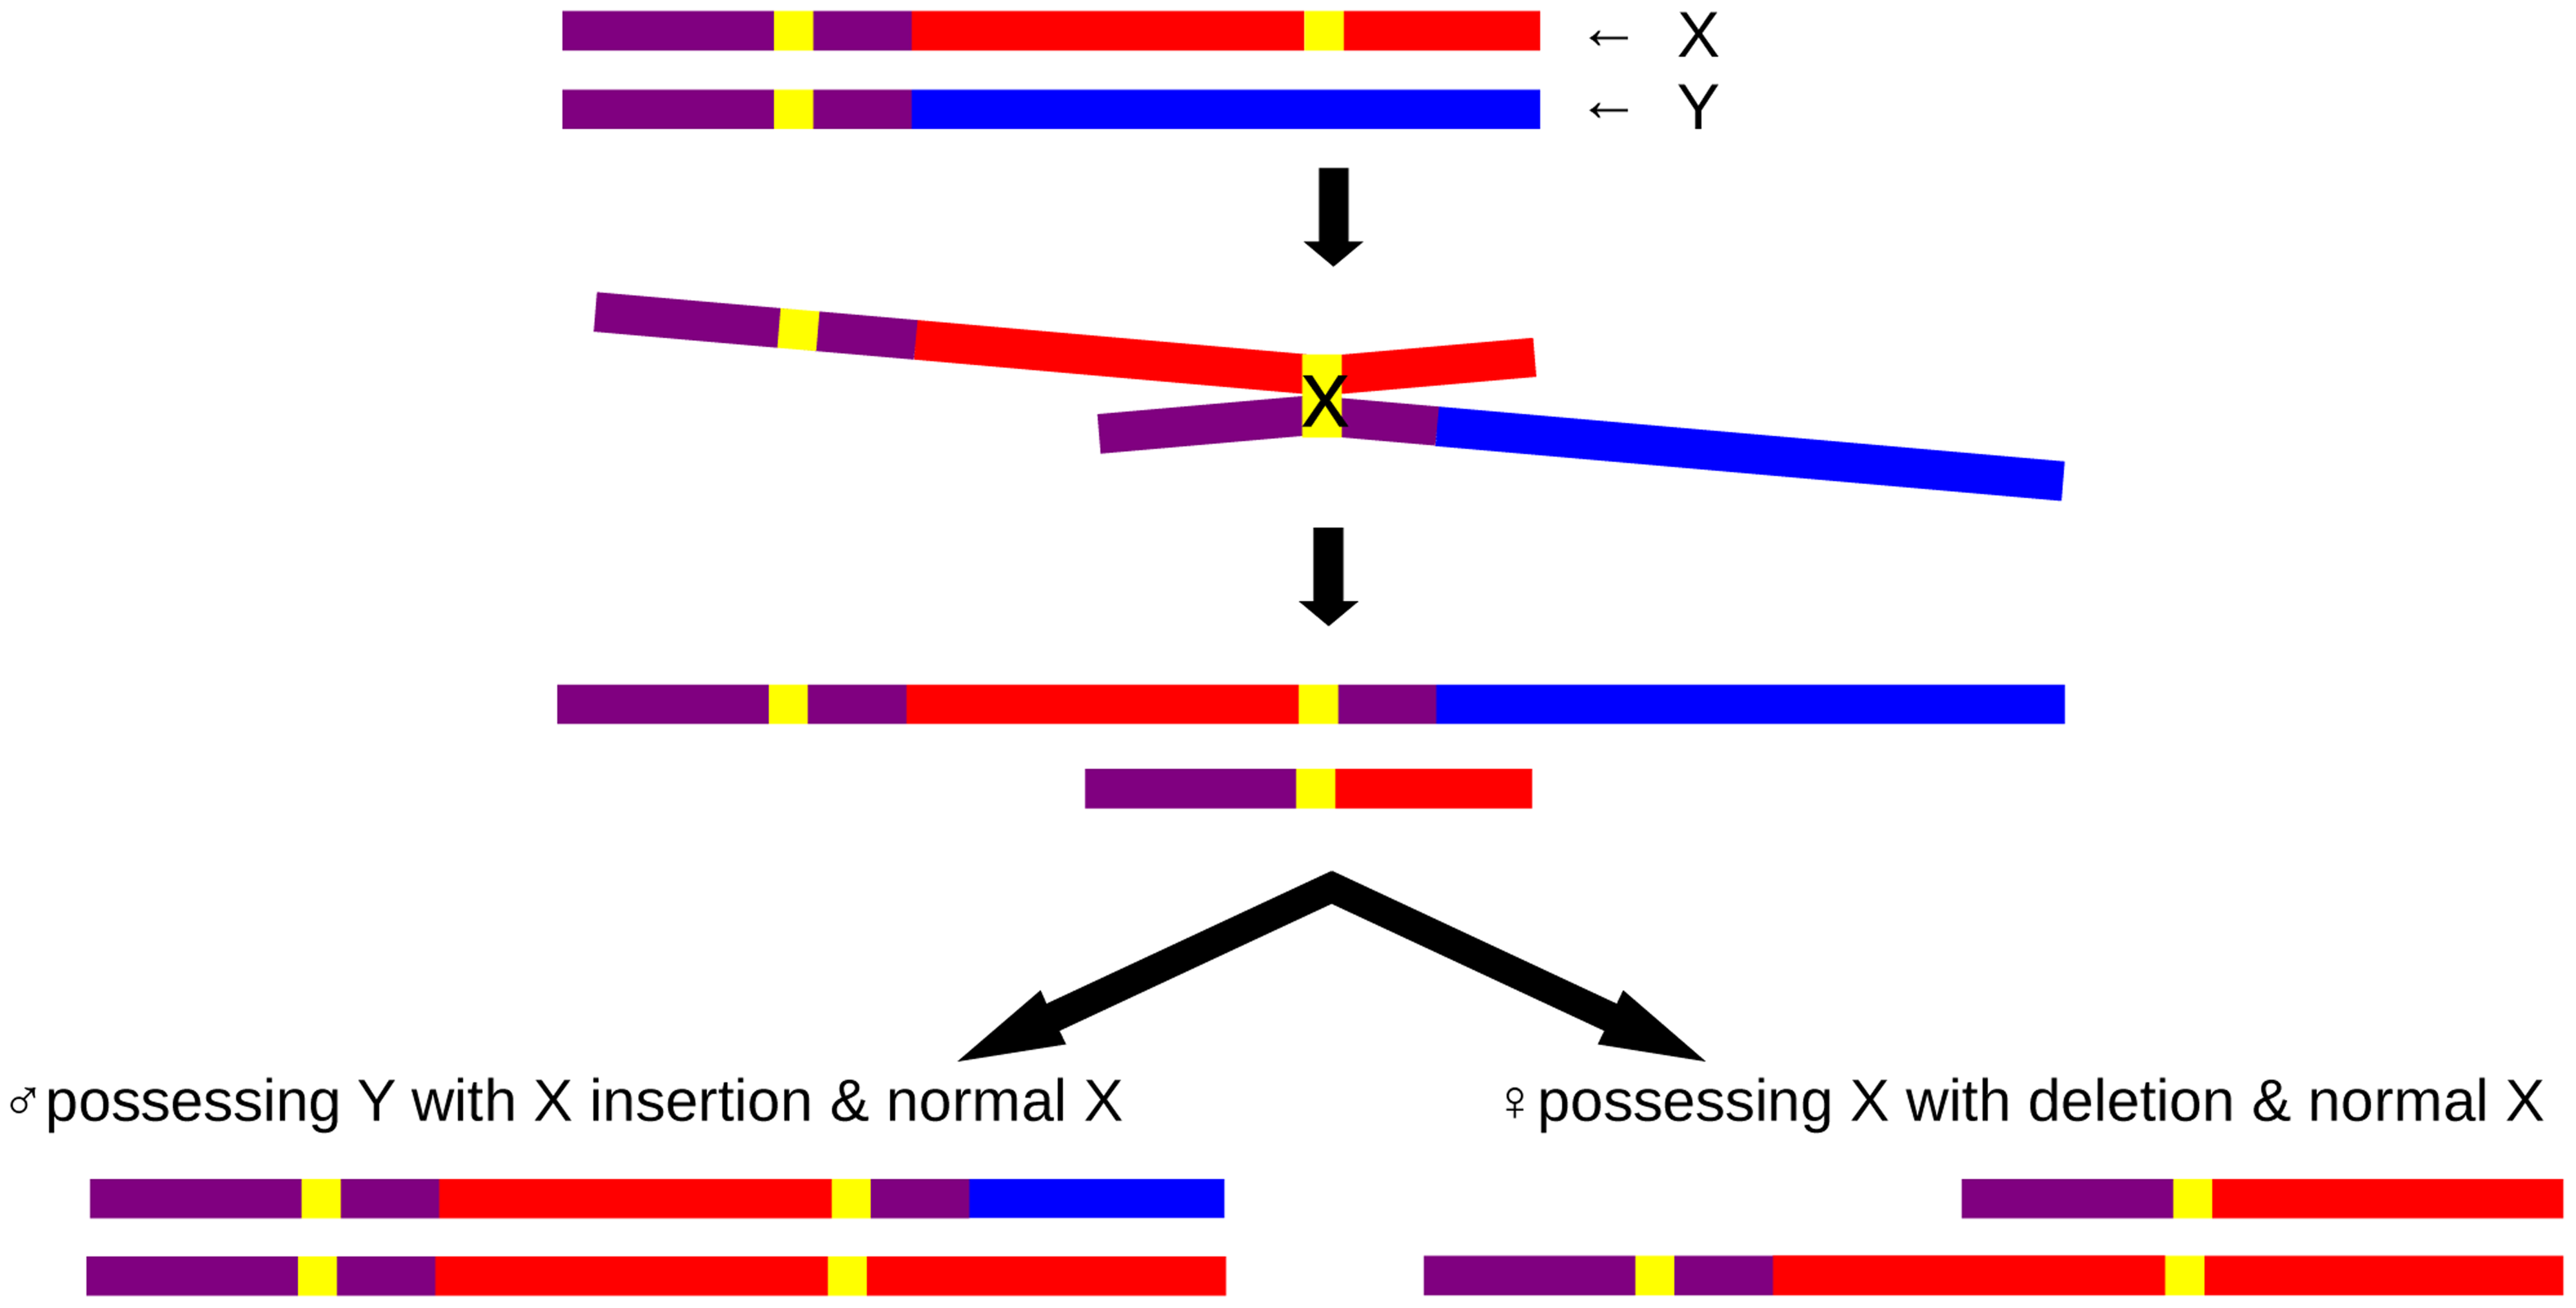 Schematic insertional translocation representation by non-allelic homologous recombination.